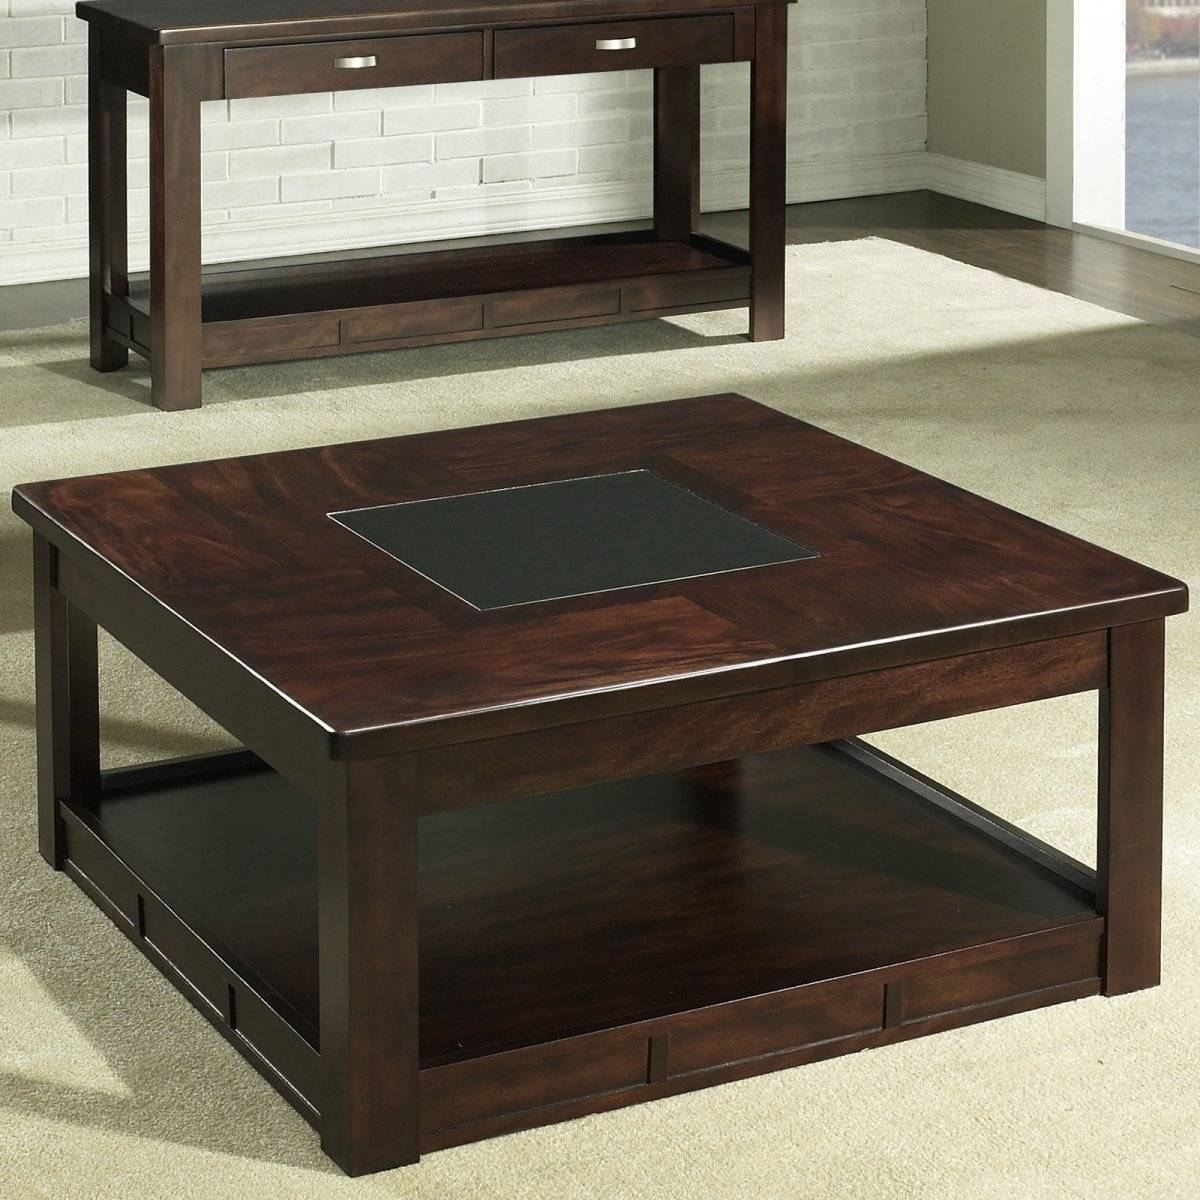 Square Wood Coffee Table With Drawers And Glass Top - Jericho regarding Glass Square Coffee Tables (Image 28 of 30)